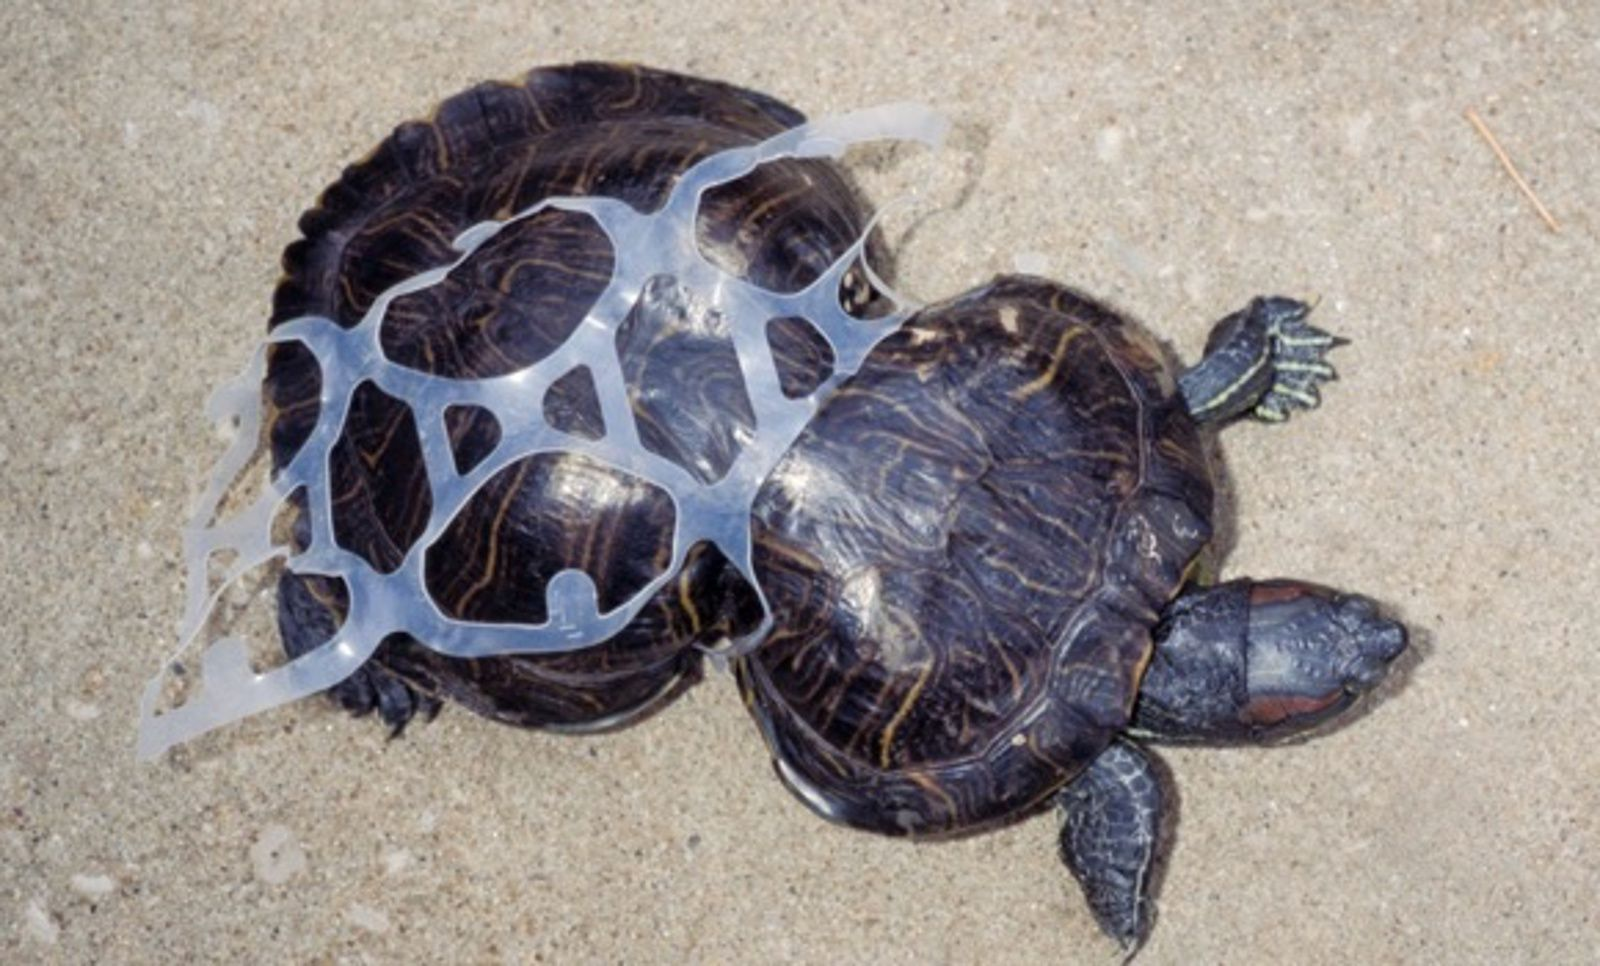 Poor Turtle Permanently Injured By Plastic 6 Pack Ring Is Now An Ambassador To Help Others Turtle Save The Sea Turtles Marine Life